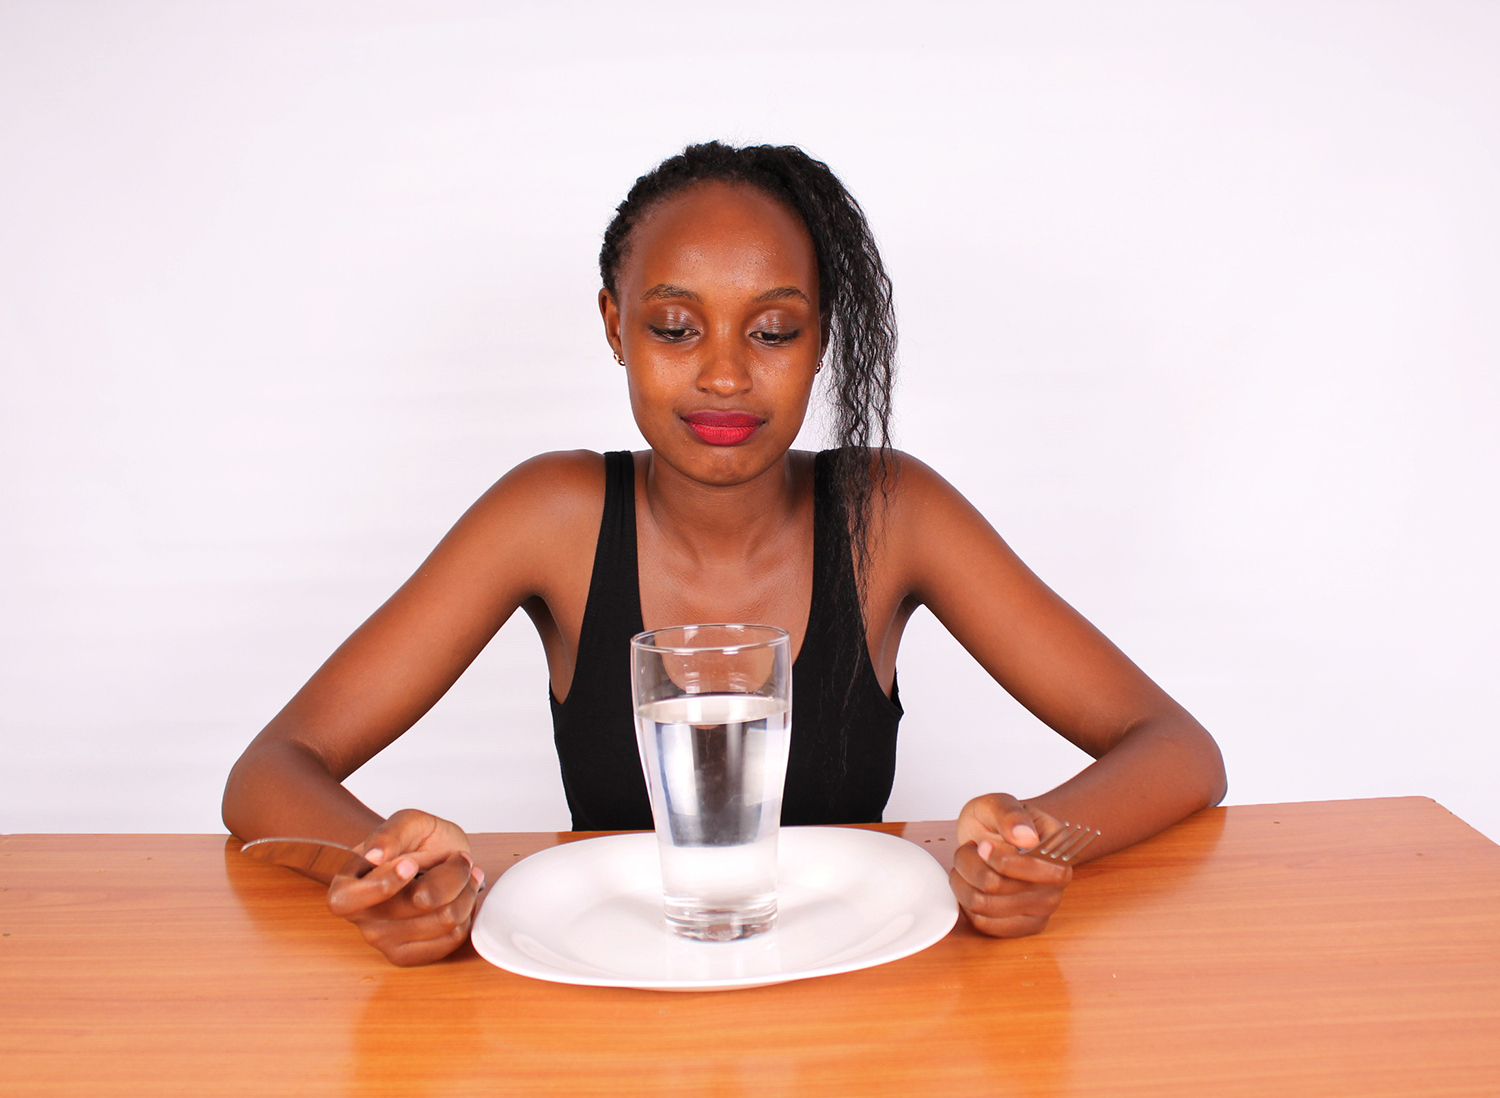 Fasting Concept. Woman Sitting on Table With Plate and Glass of Water